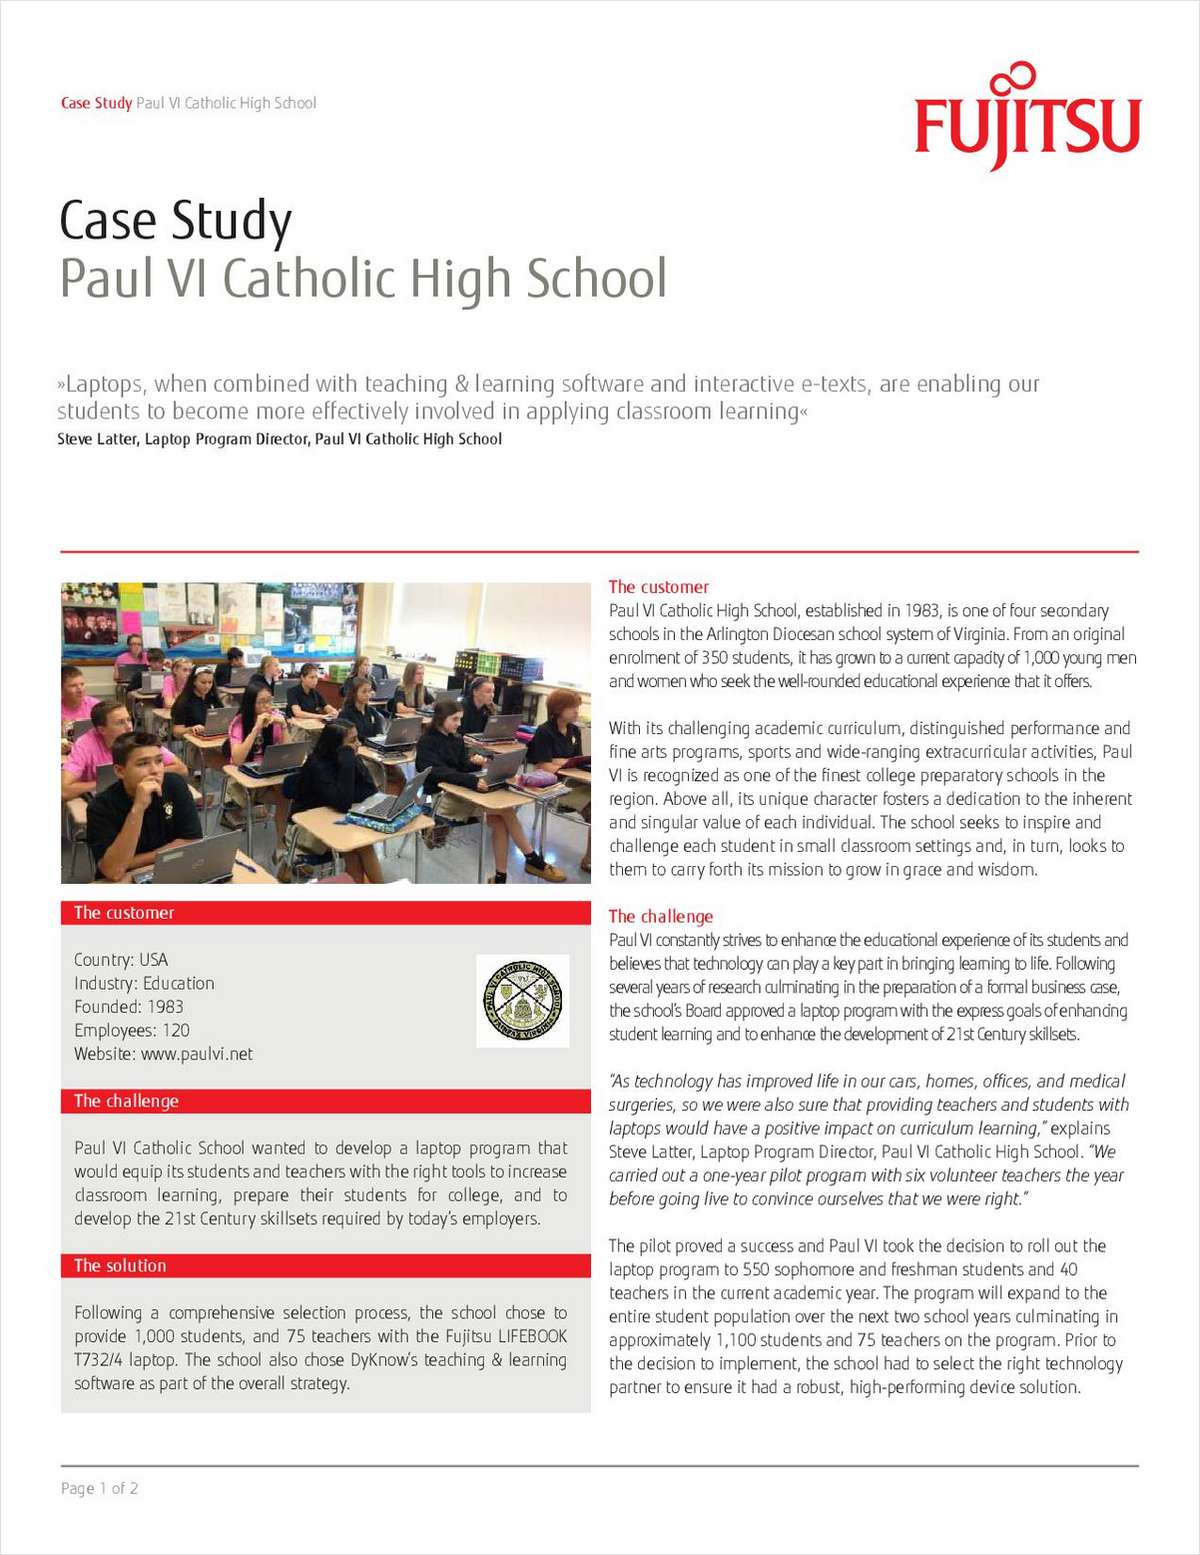 Explore How Paul VI Catholic High School Benefited From Fujitsu's Devices and Software